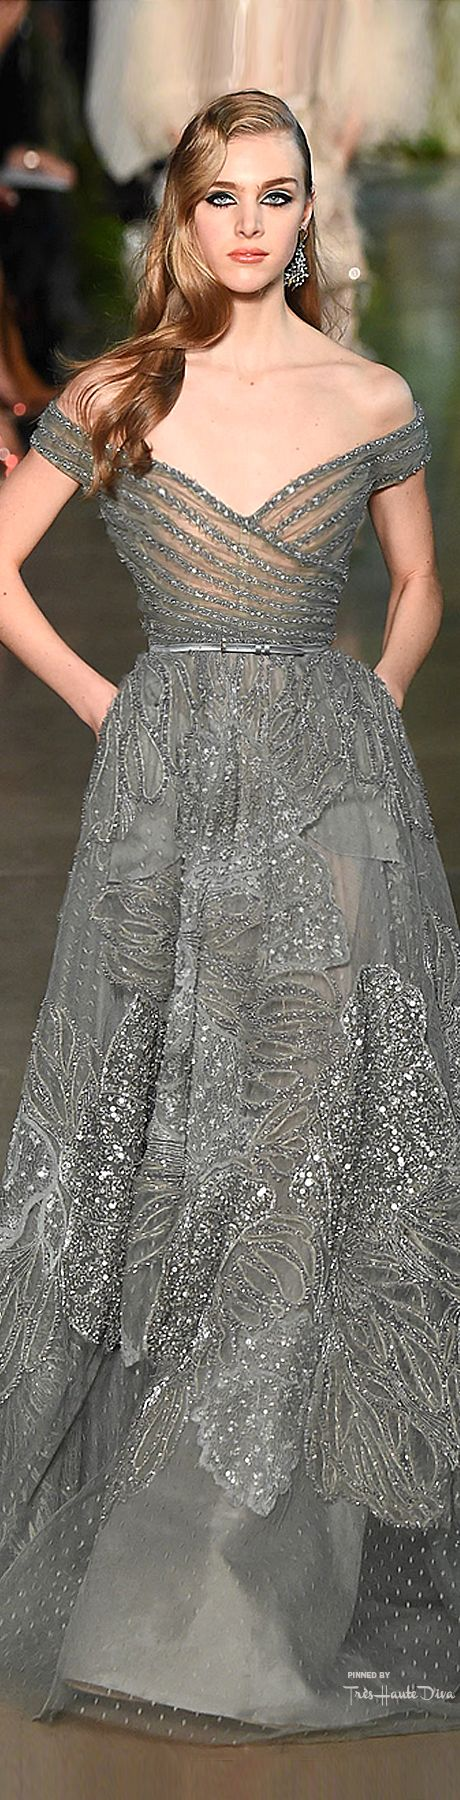 Elie Saab Spring 2015 Couture. This silver, subtly patterned and glittered gown truly is a beauty.: